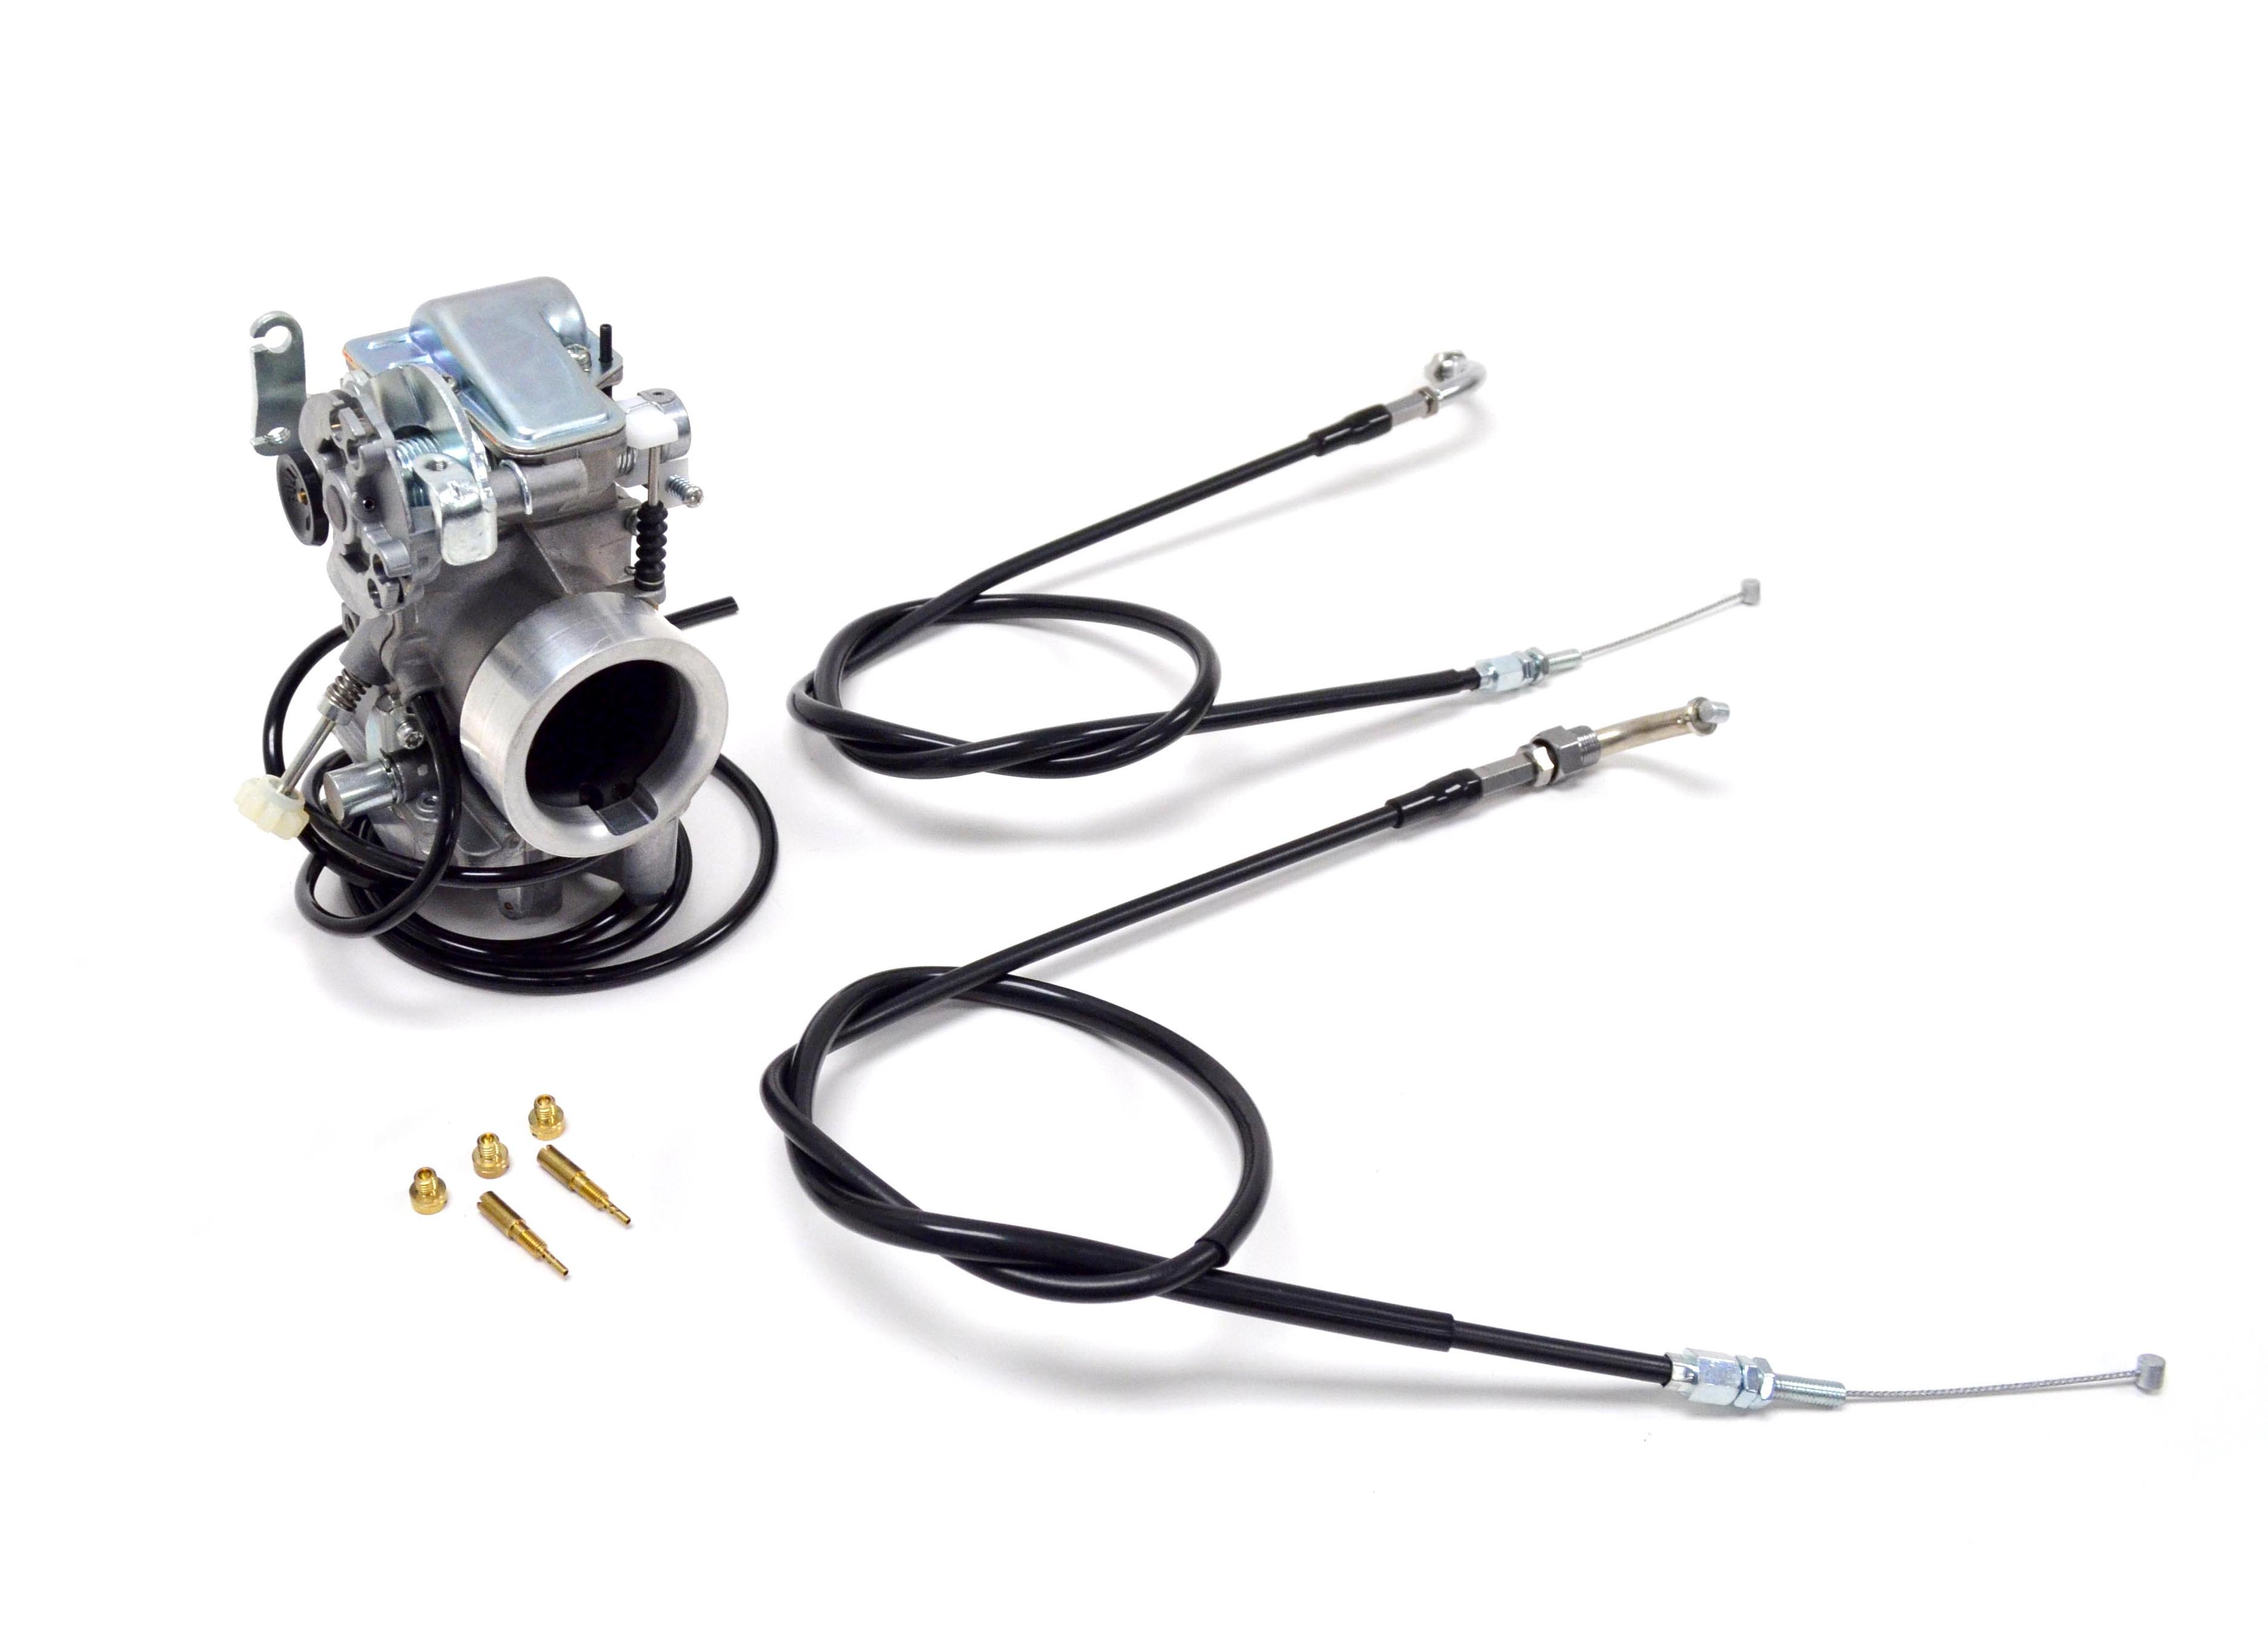 Honda XR400R Mikuni TM36 Pumper Carburetor Conversion Kit